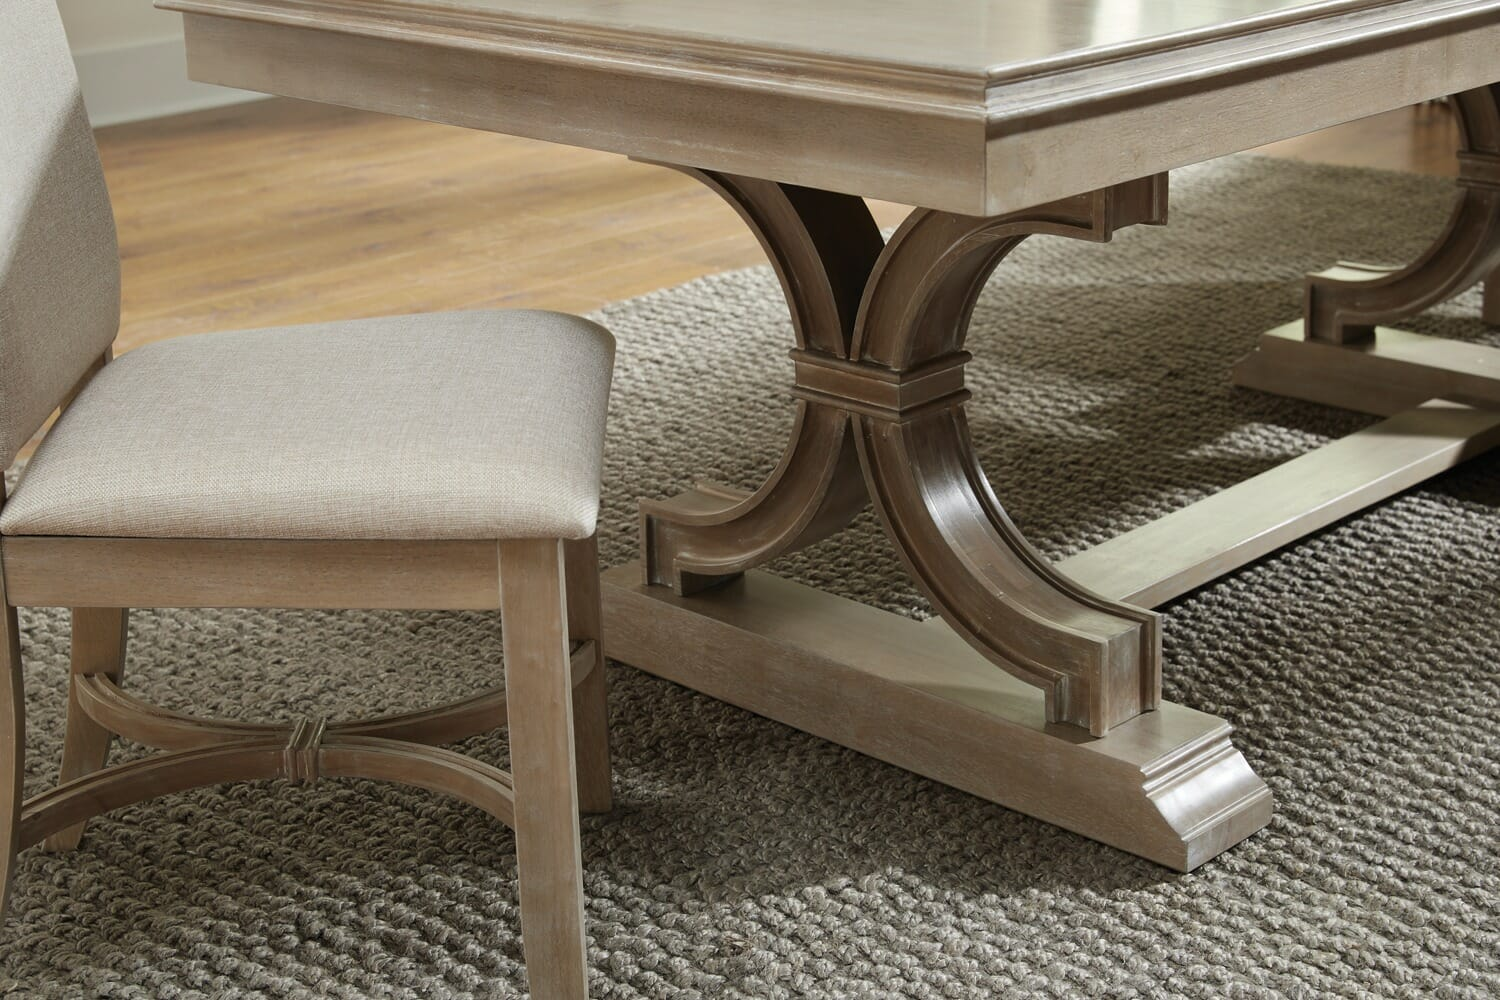 T 4078xa Parawood 40 X 78 96 Sonoma Dining Table